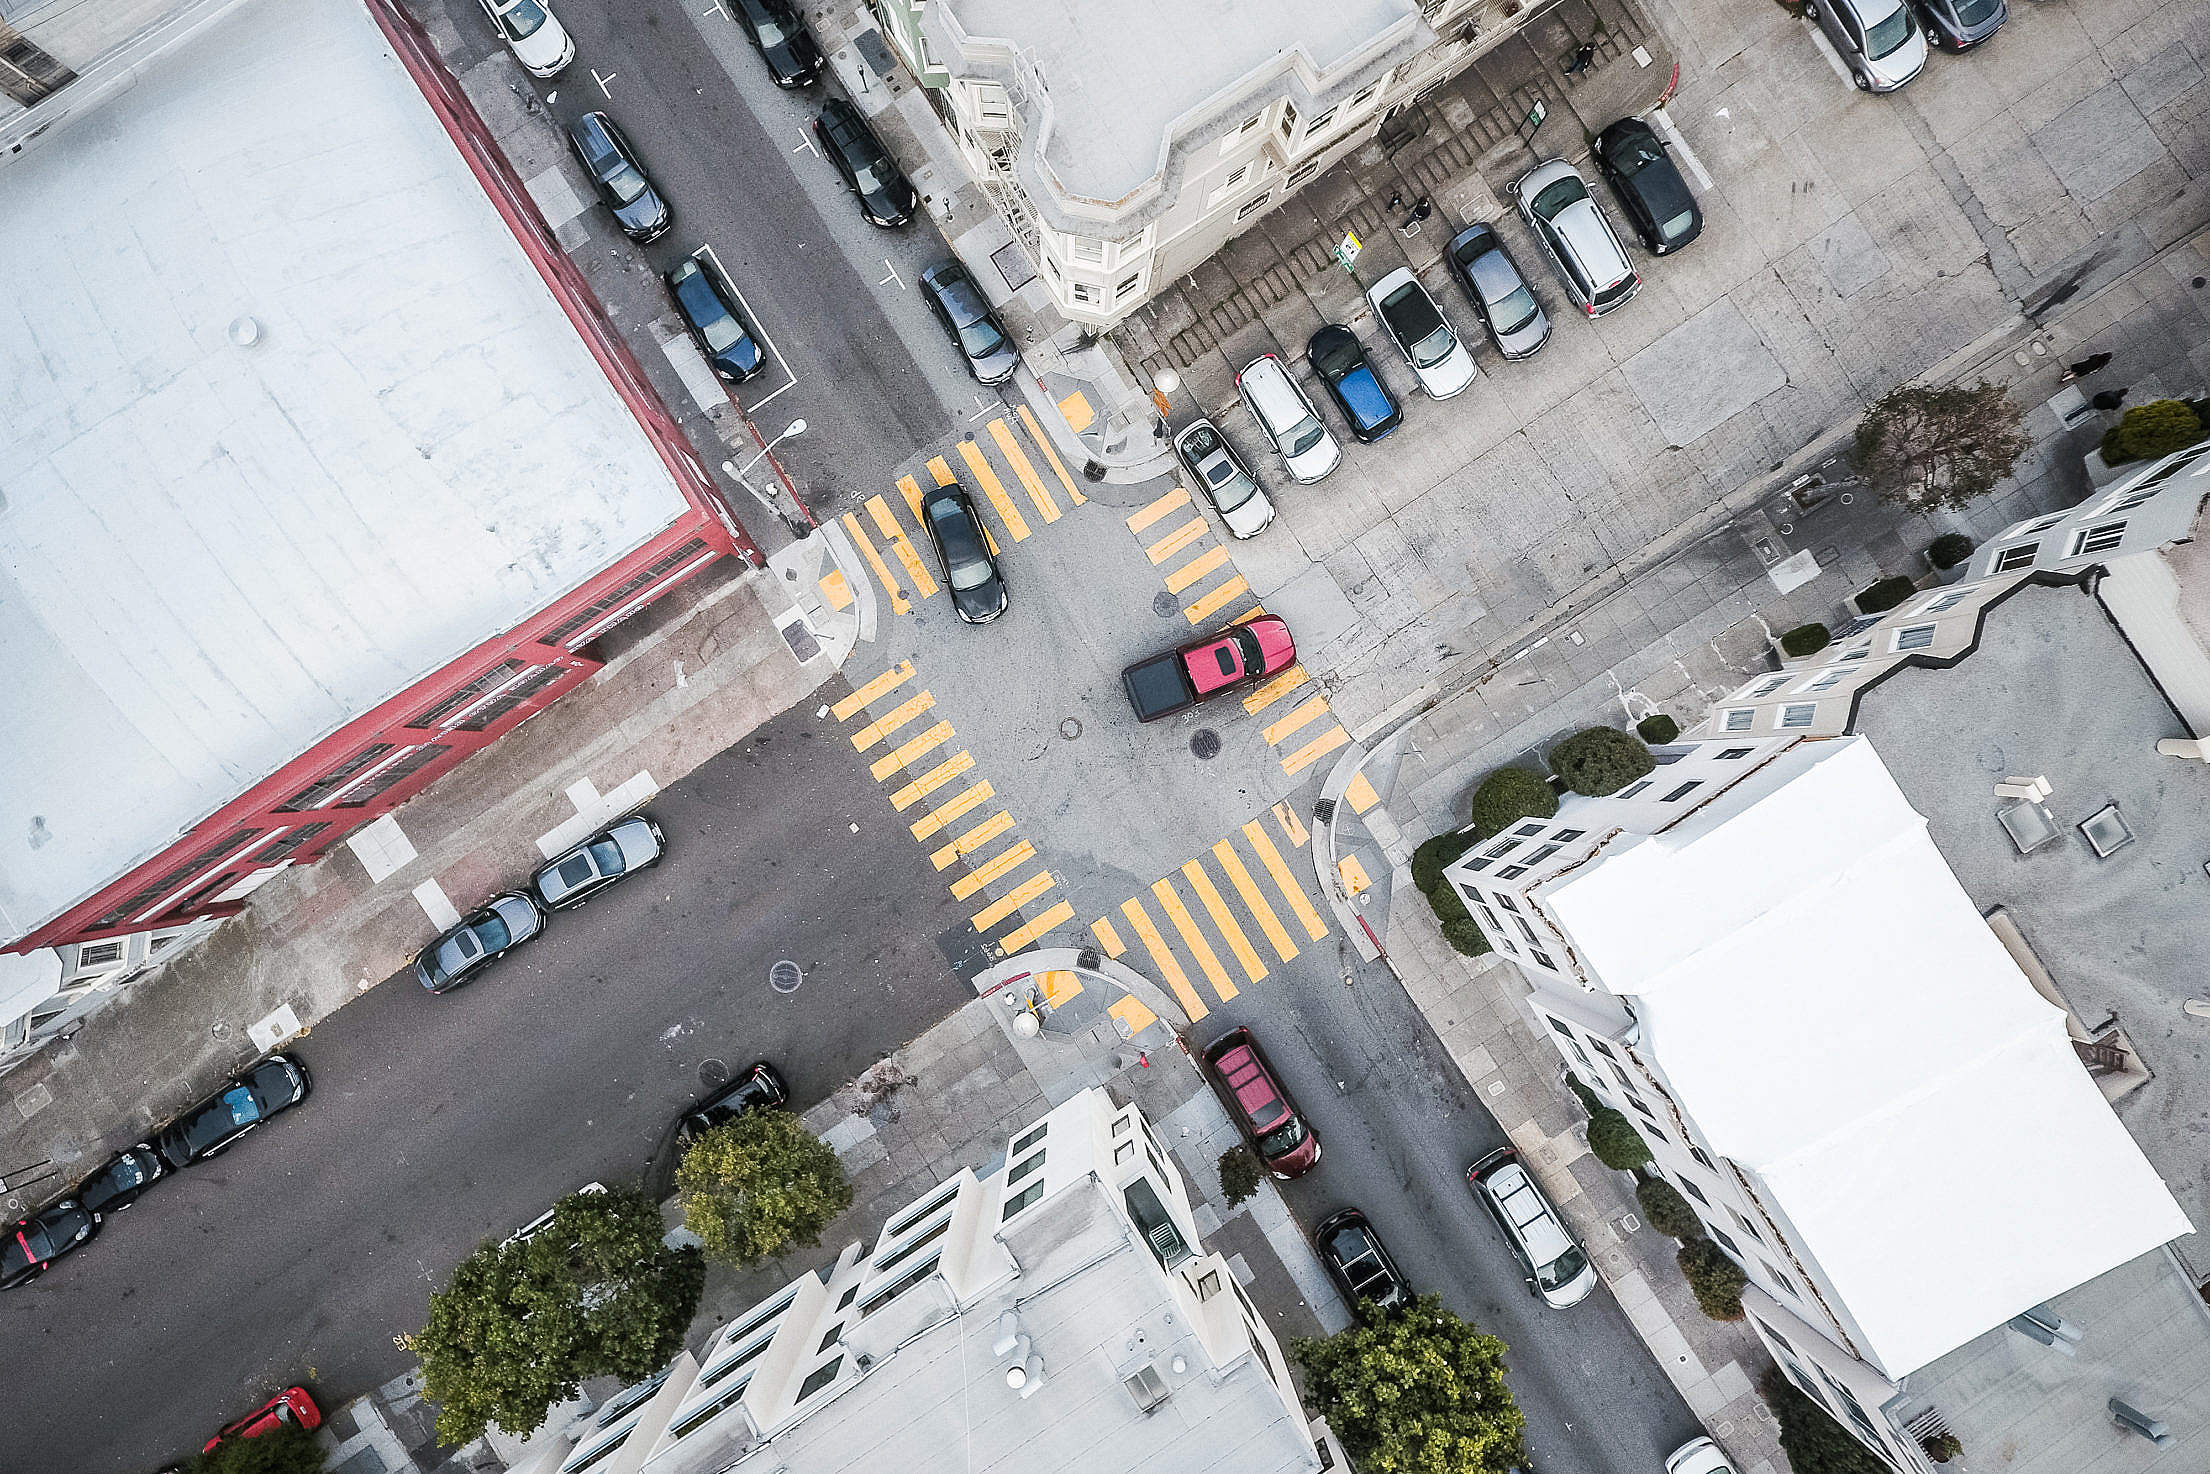 Street Road Intersection From Above Free Stock Photo